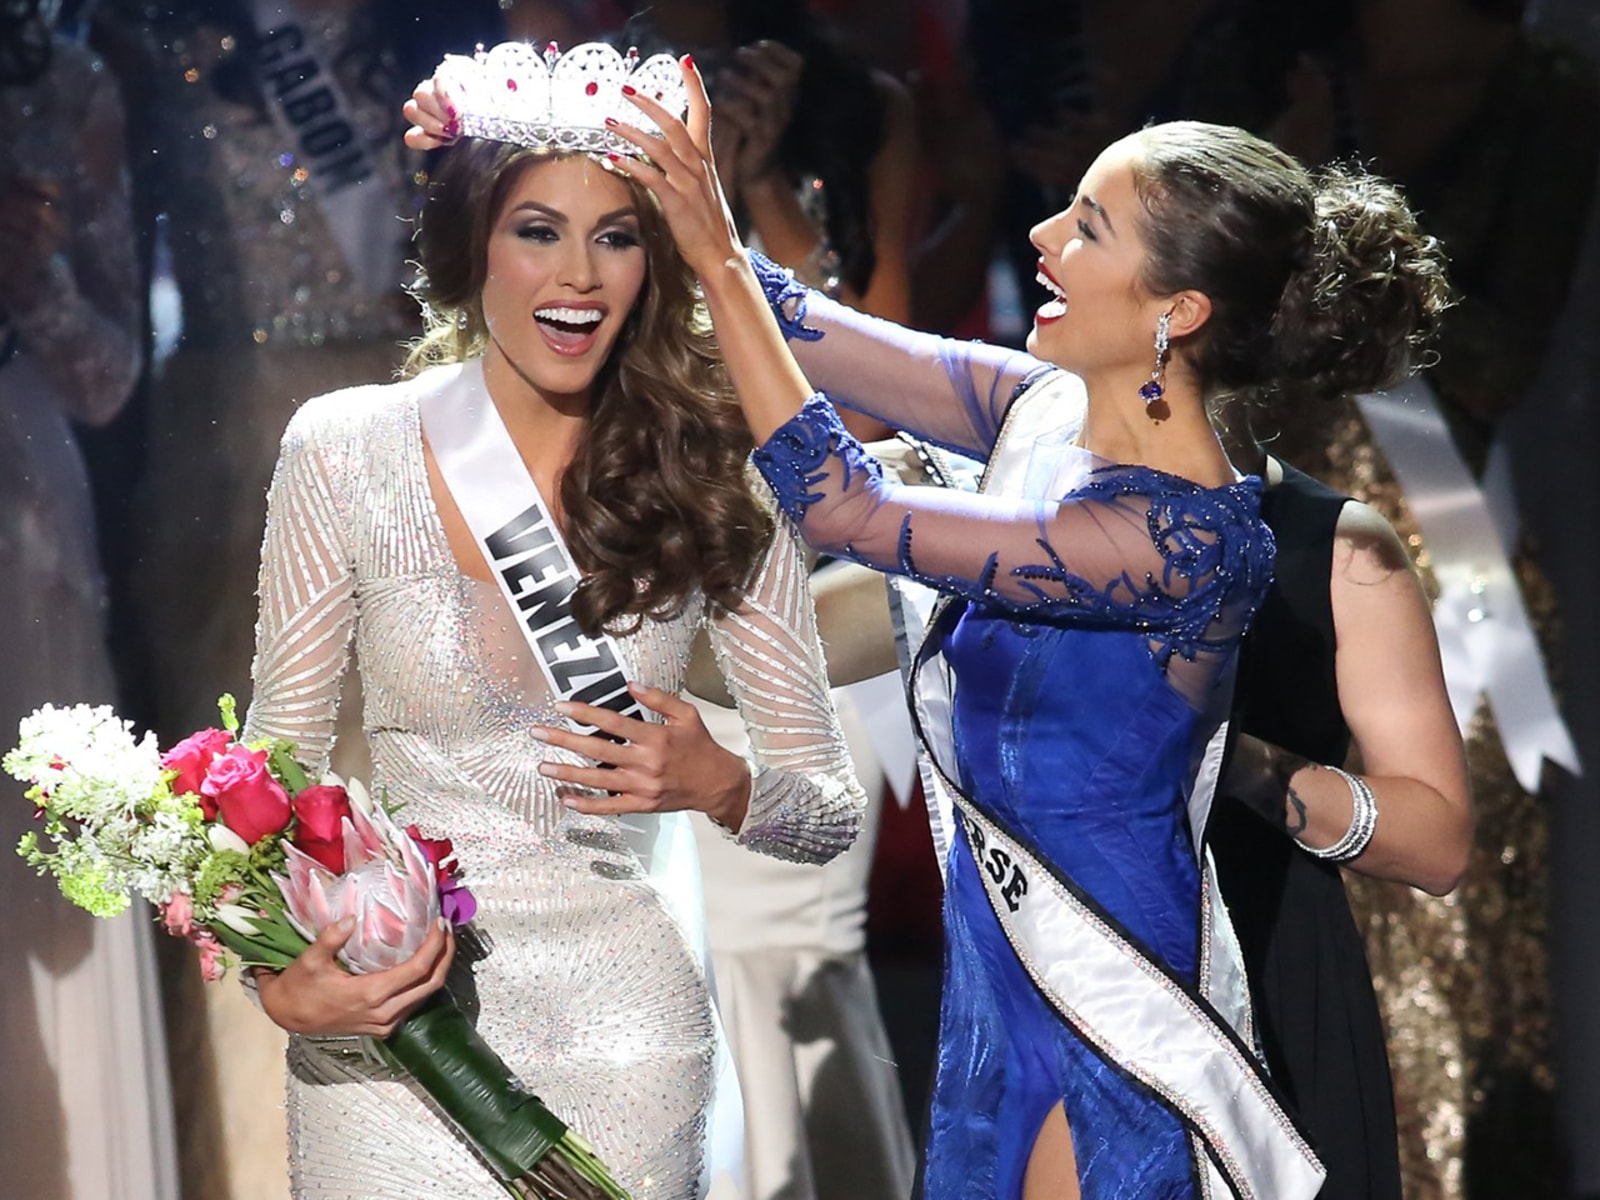 Image: Miss Universe Pageant 2013 - Show